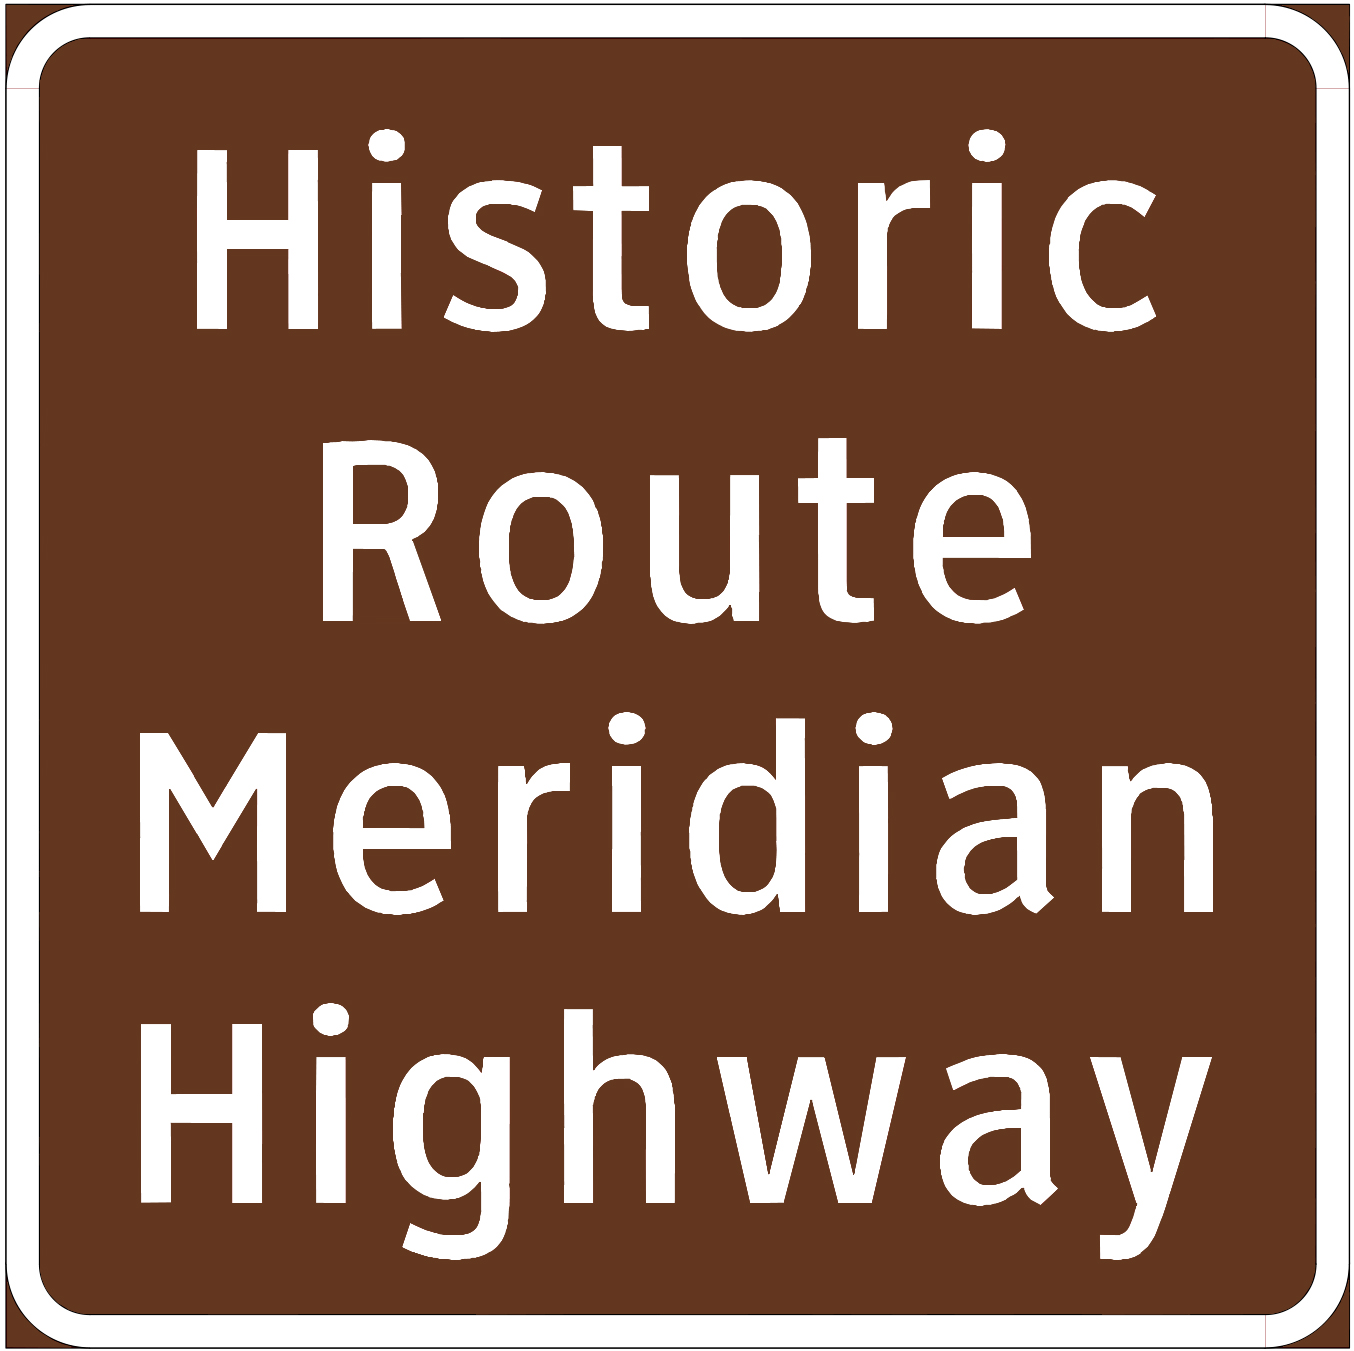 Route Identification Signs Principally Identify Road Alignments Along The Length Of Historic Texas Highway That Has Been Designated As